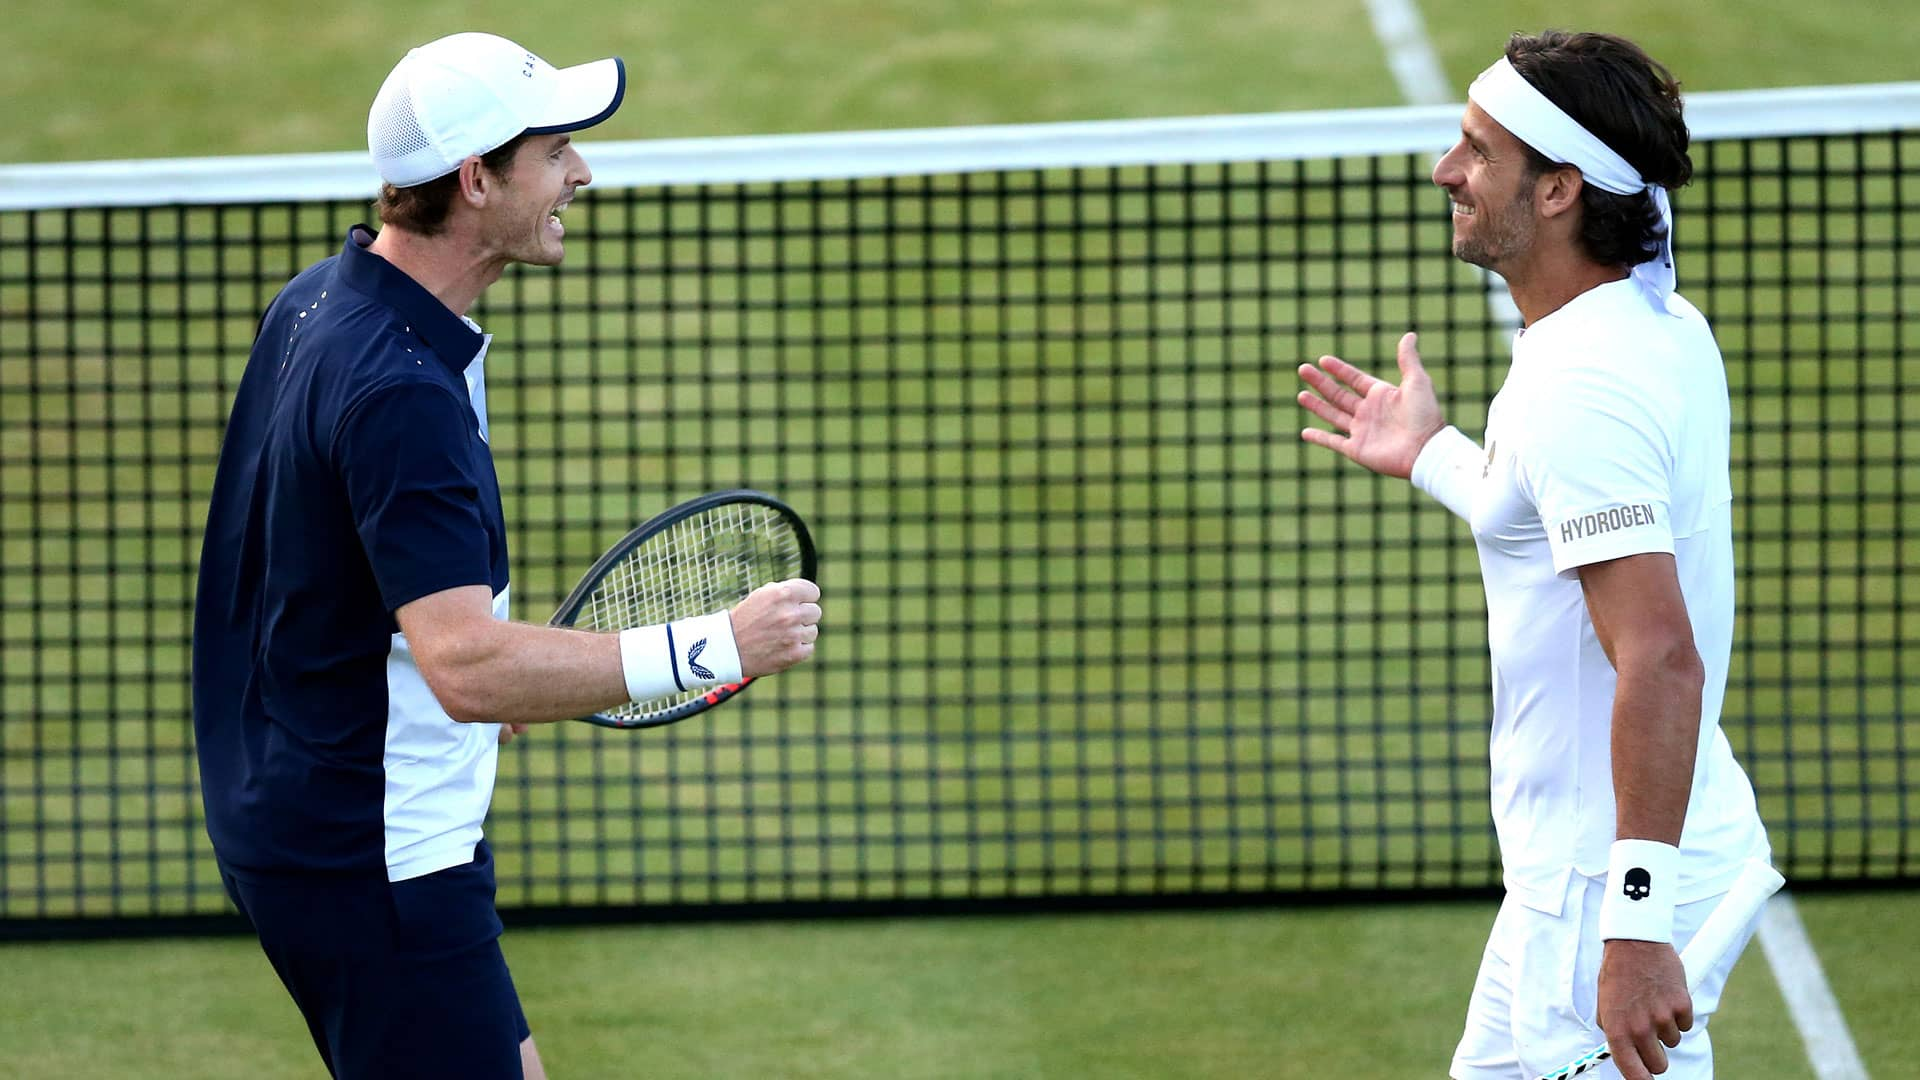 Andy Murray and Feliciano Lopez celebrate at Queen's Club 2019